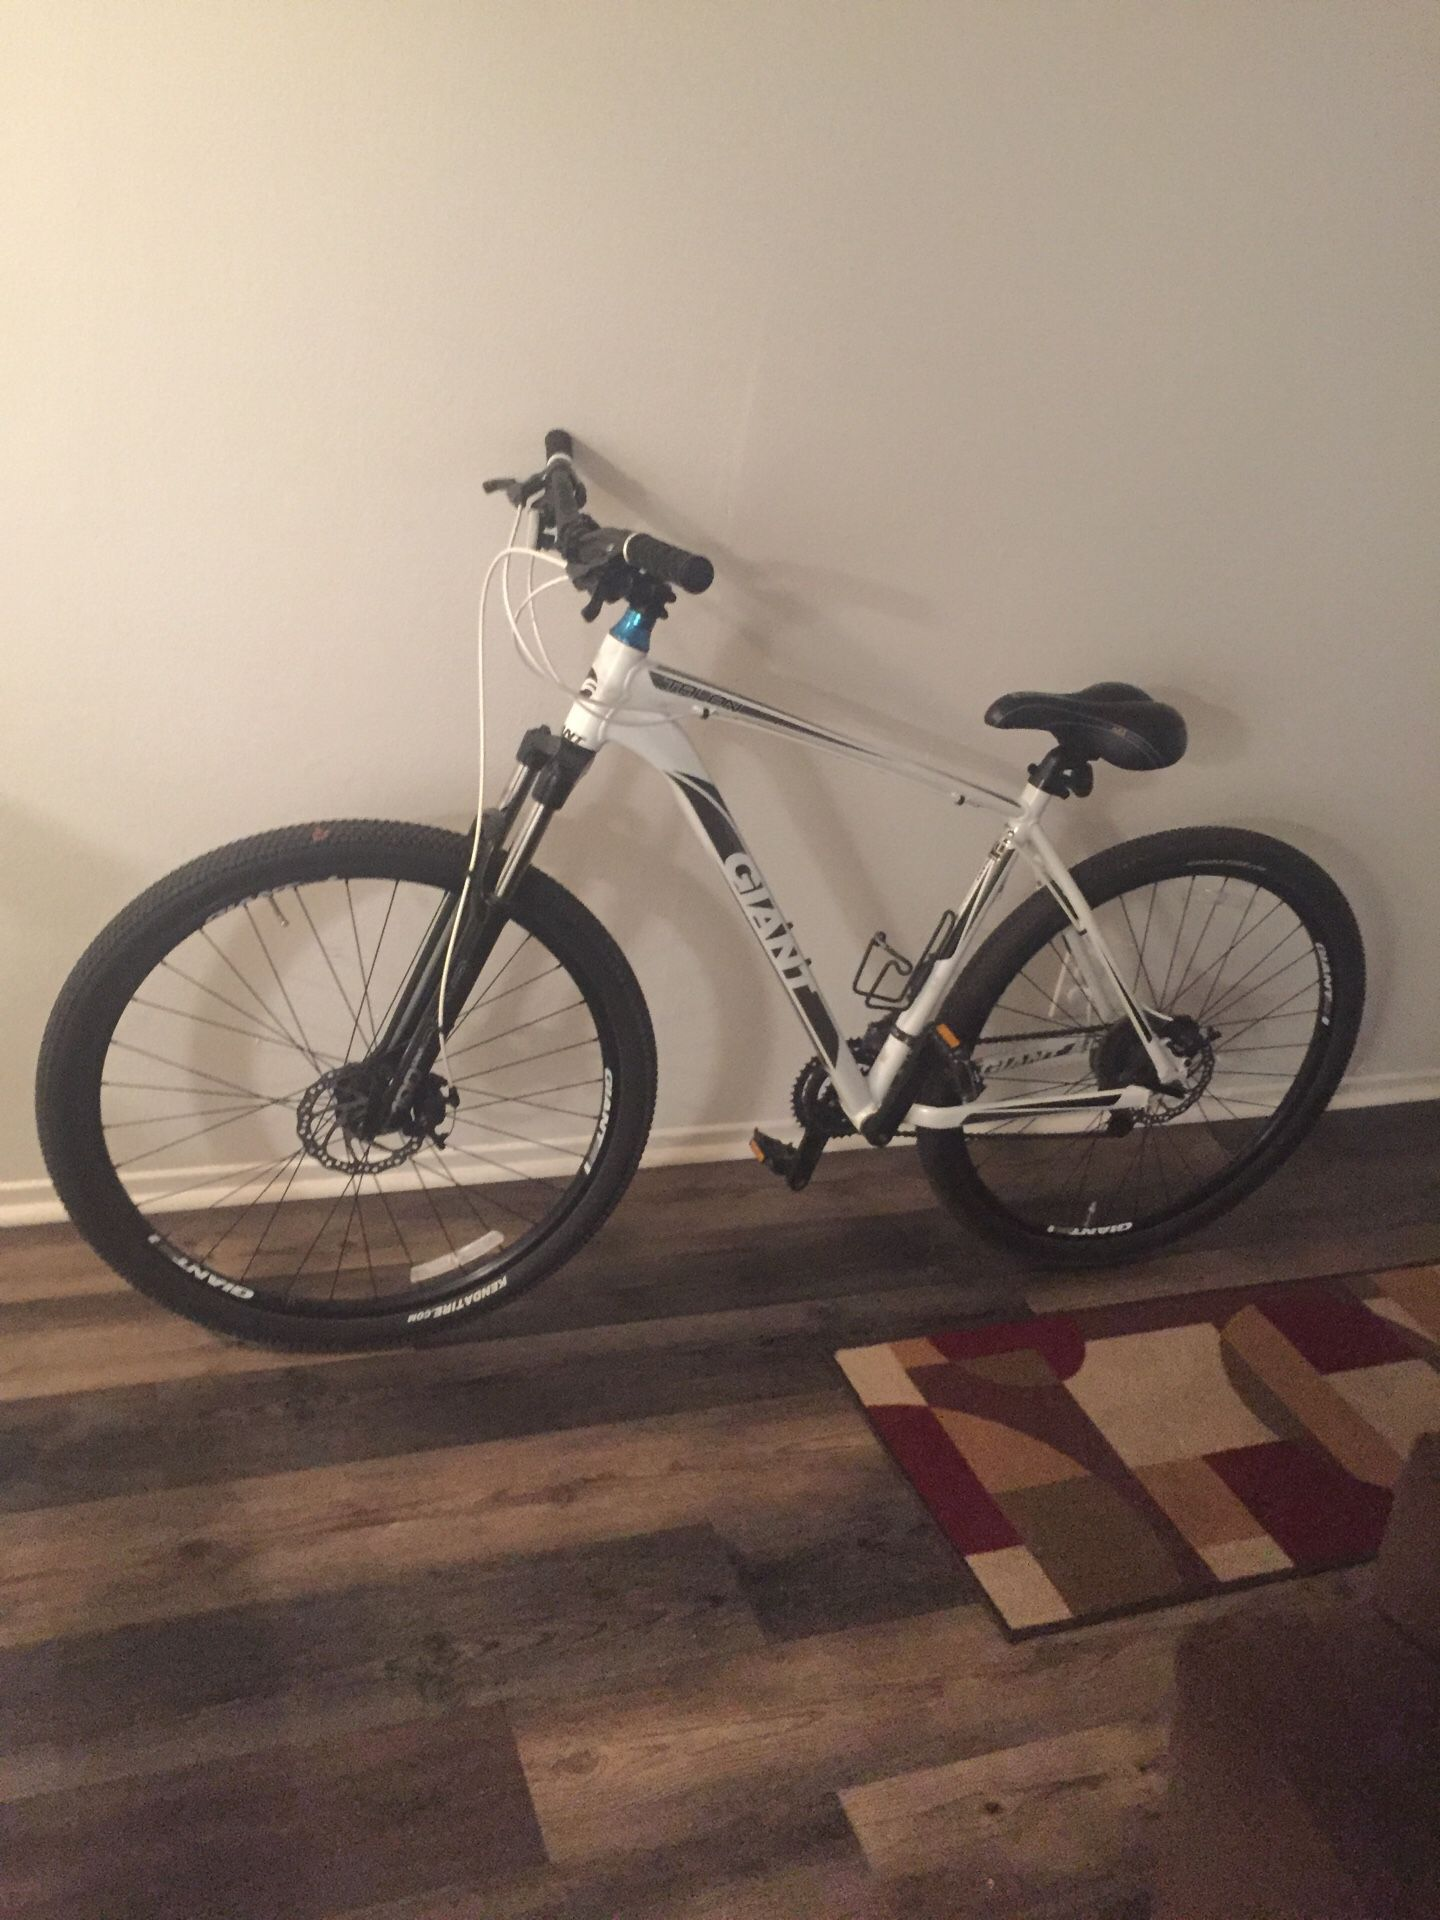 Talon Giant 2. Very good bike in and out